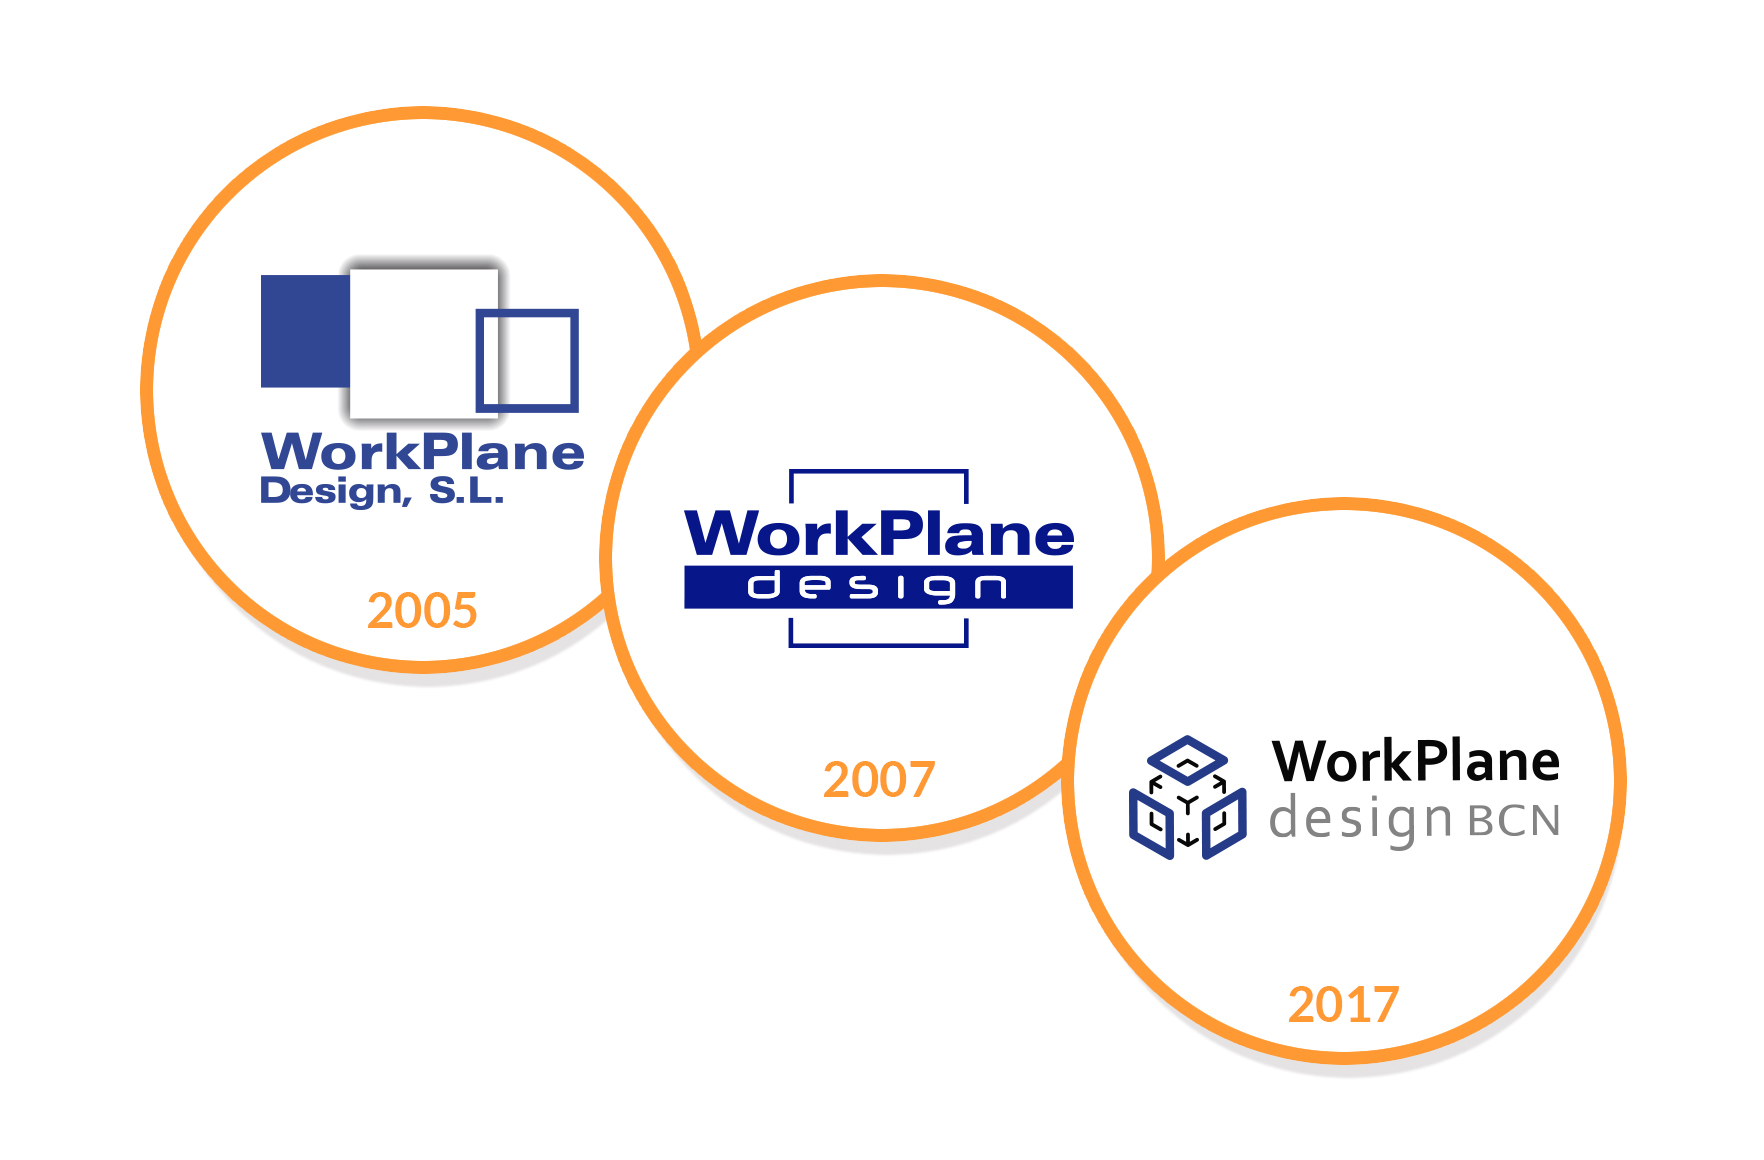 Workplane logos historic